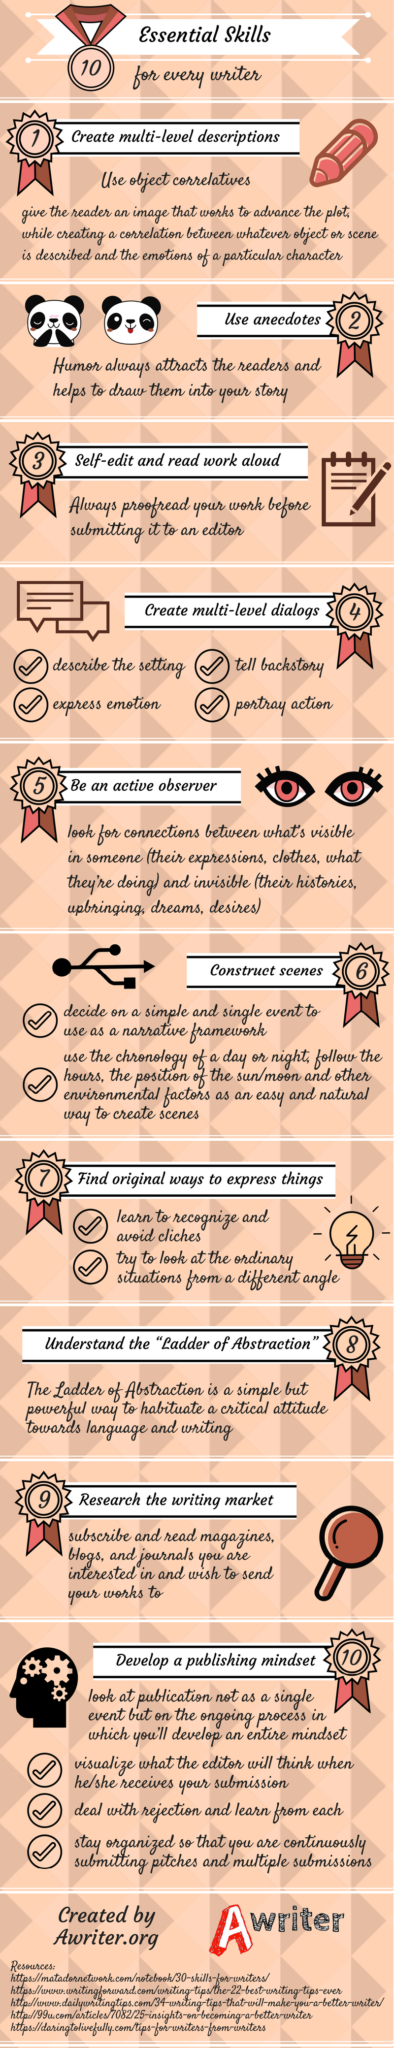 10 Essential Skills for Every Writer [INFOGRAPHIC]